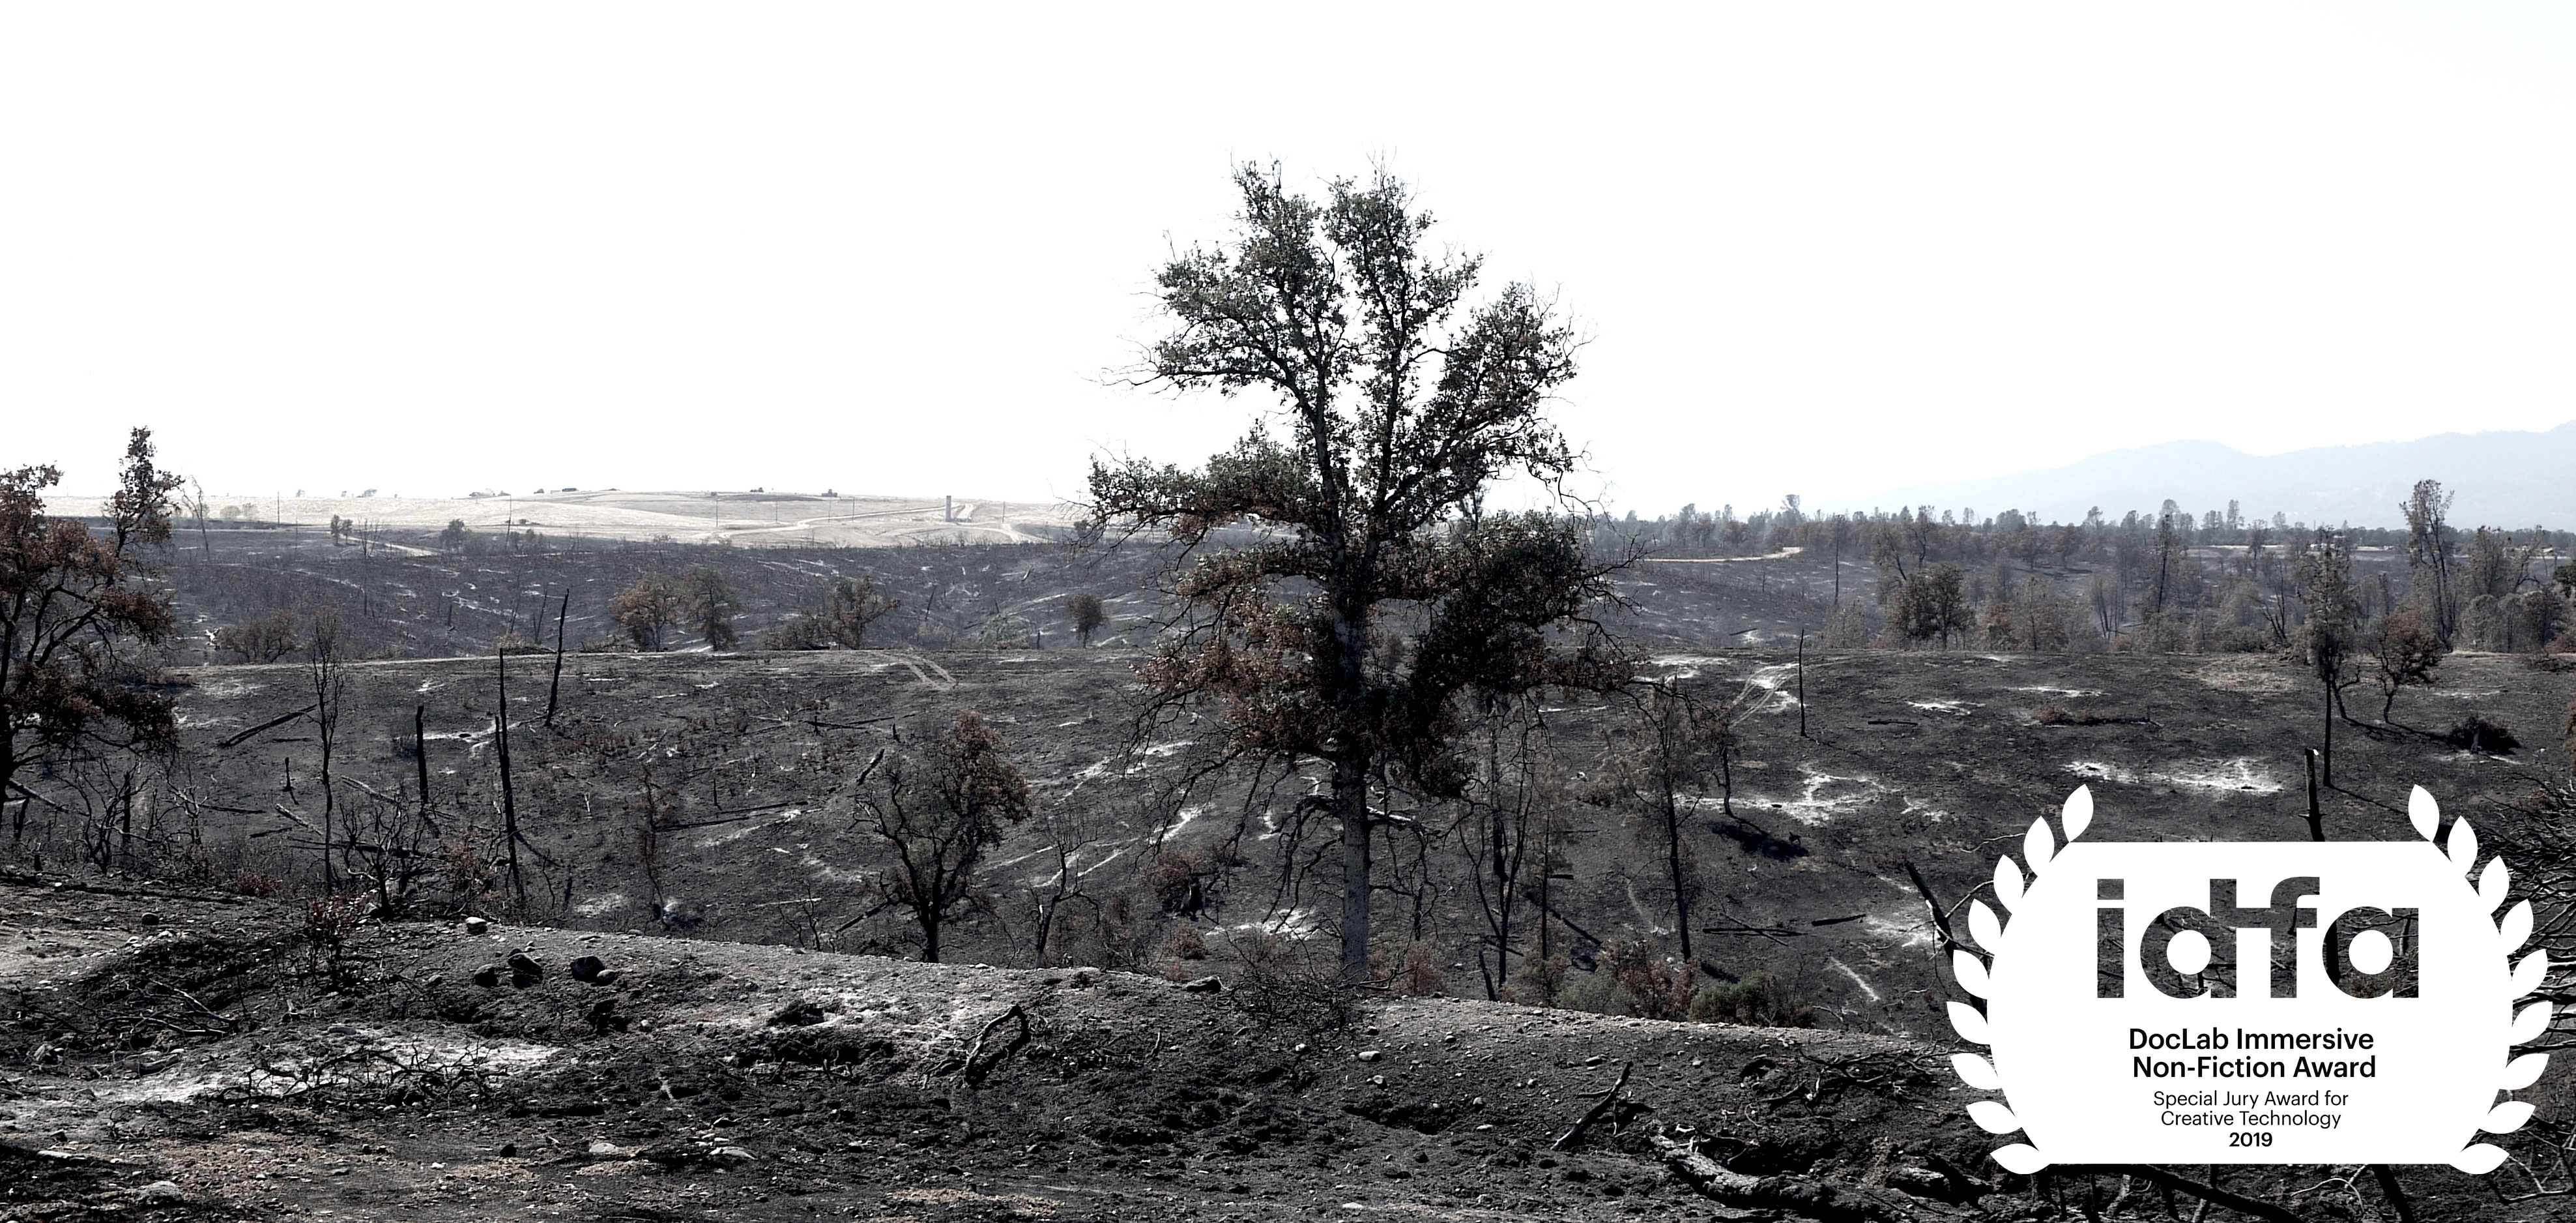 Black and white photograph of scrub land after forest fire. A single tree stands in the centre.